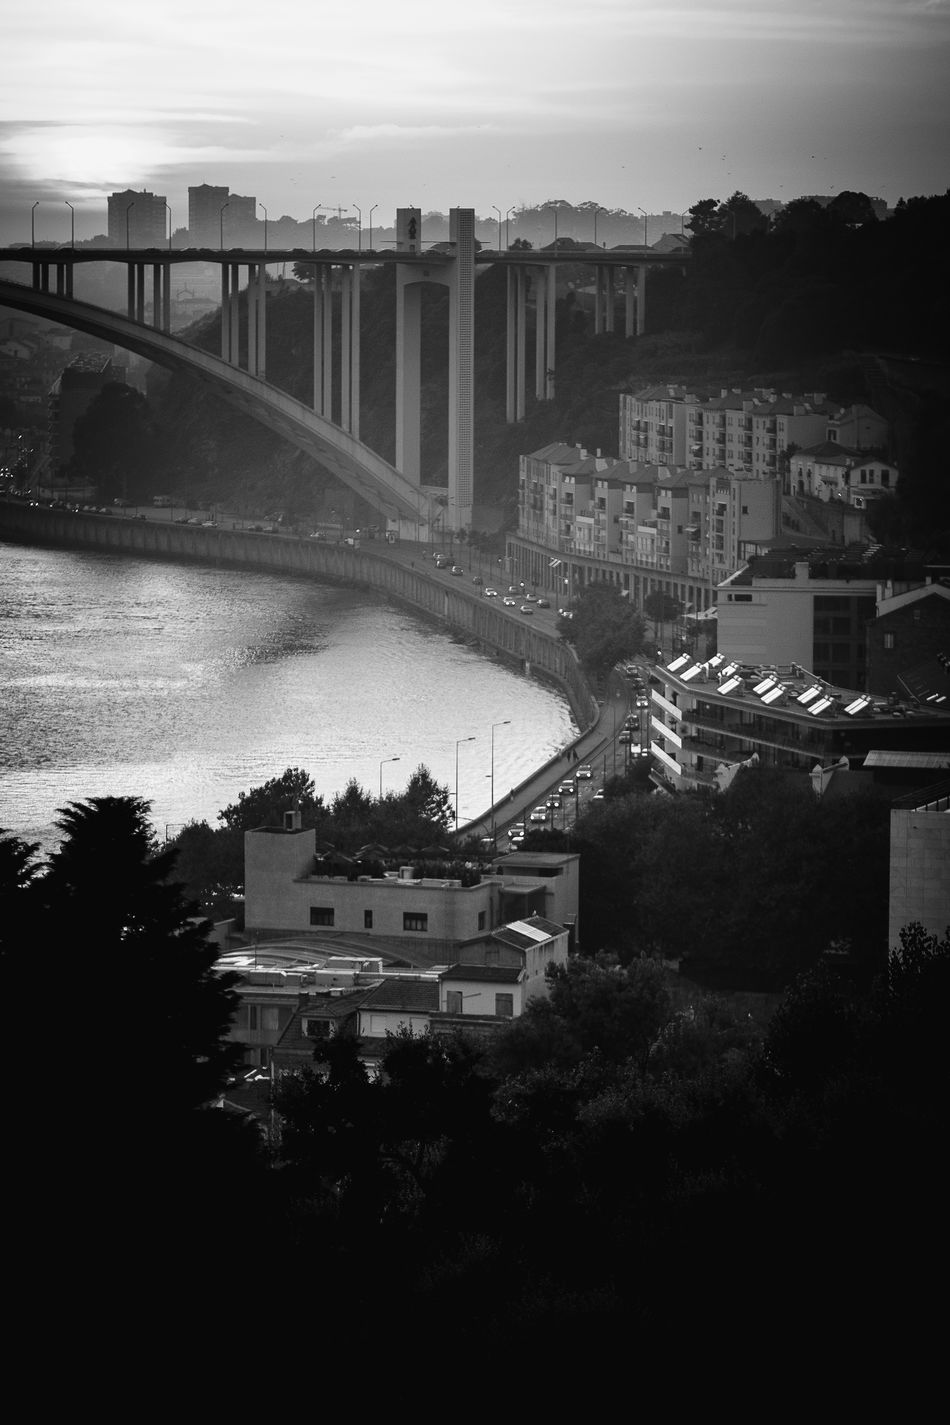 Half a bridge Architecture Bridge - Man Made Structure Building Exterior Built Structure City Cityscape Day House Modern Monochrome Photography No People Outdoors River Sky Travel Travel Destinations Tree Urban Skyline Vertical Water